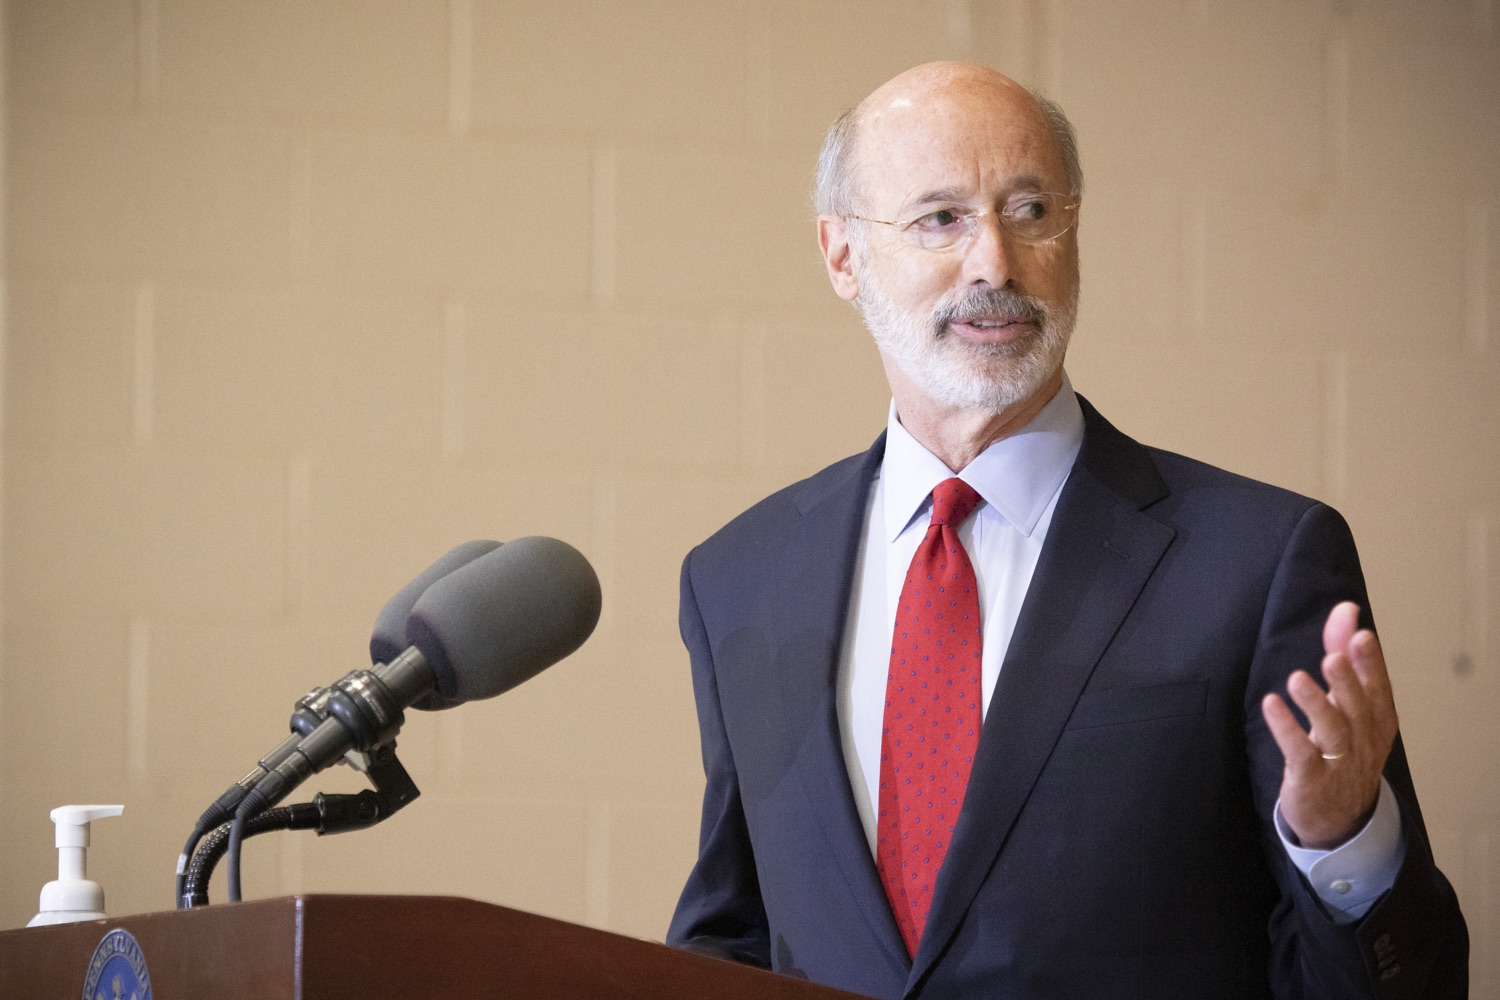 """<a href=""""https://filesource.wostreaming.net/commonwealthofpa/photo/18310_gov_adult_use_cannabis_dz_013.jpg"""" target=""""_blank"""">⇣Download Photo<br></a>Governor Tom Wolf speaks to the press.Governor Tom Wolf visited The Mountain Center in Tobyhanna, Monroe County today to talk about the economic growth potential and restorative justice benefits of legalizing adult-use cannabis, something the state General Assembly has not yet done despite multiple requests from the governor and Lieutenant Governor John Fetterman to take up legislation this fall.  Tobyhanna, PA  October 13, 2020"""